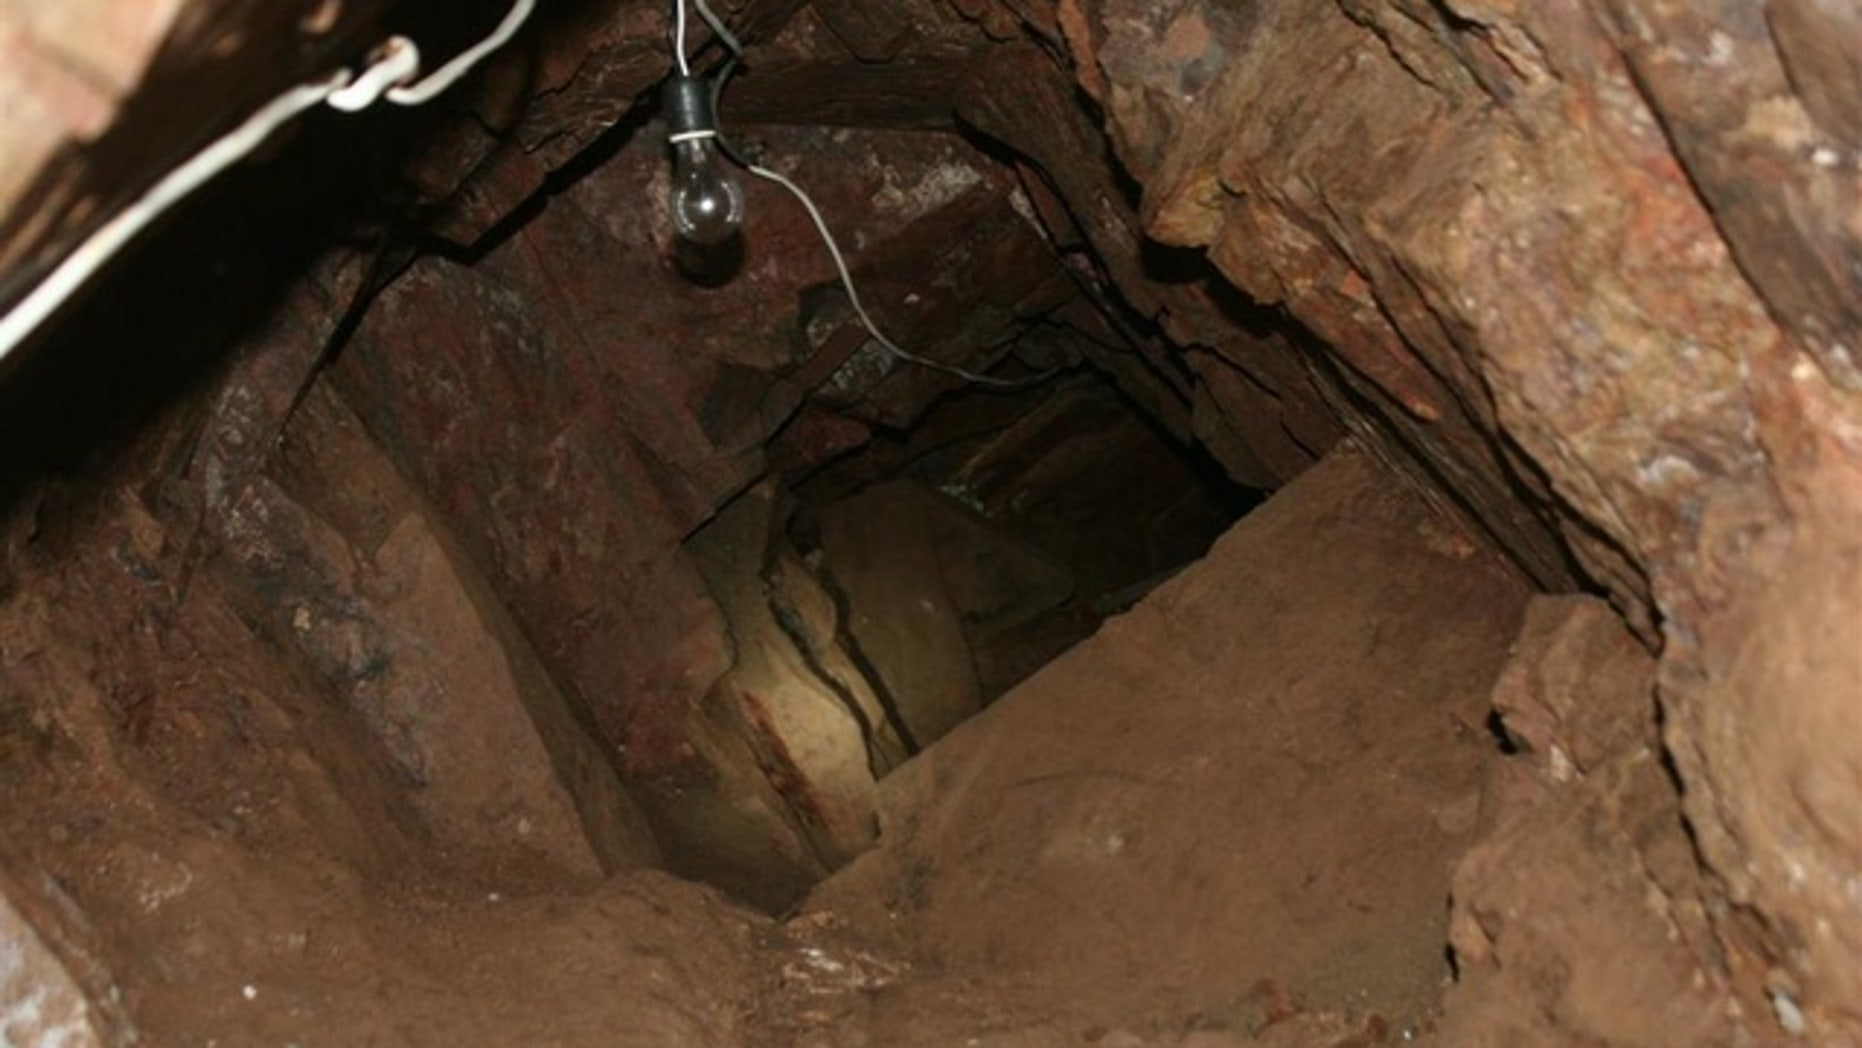 A 90-foot drug tunnel was discovered in Nogales, Ariz.